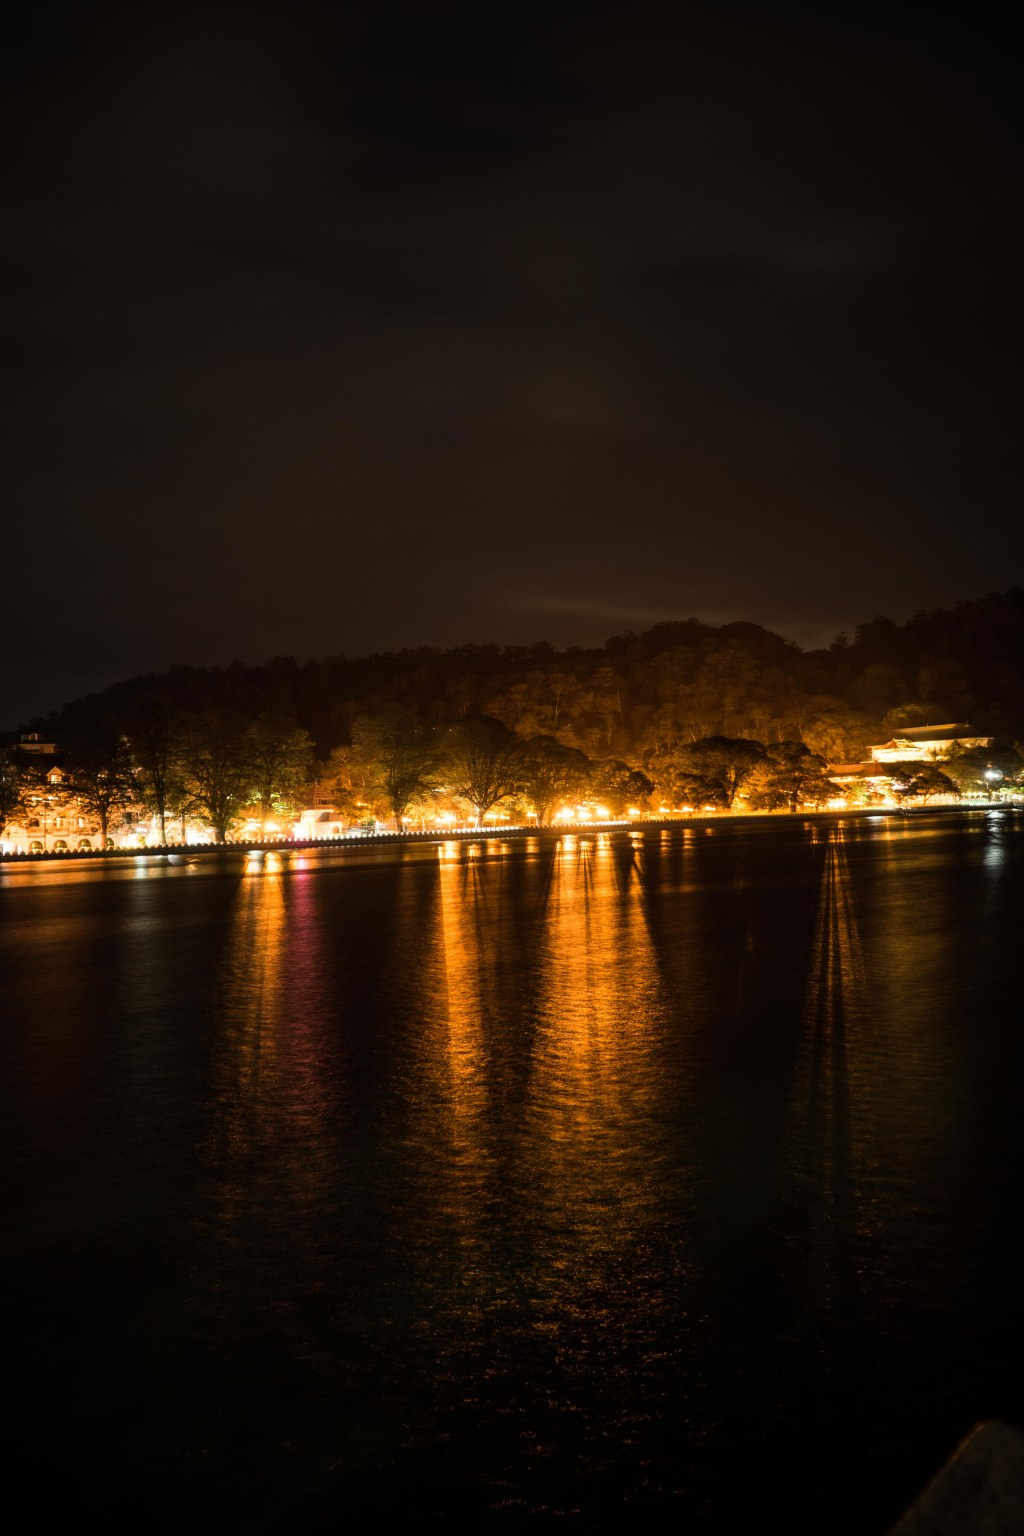 Lights reflecting off from the lake in Kandy at night